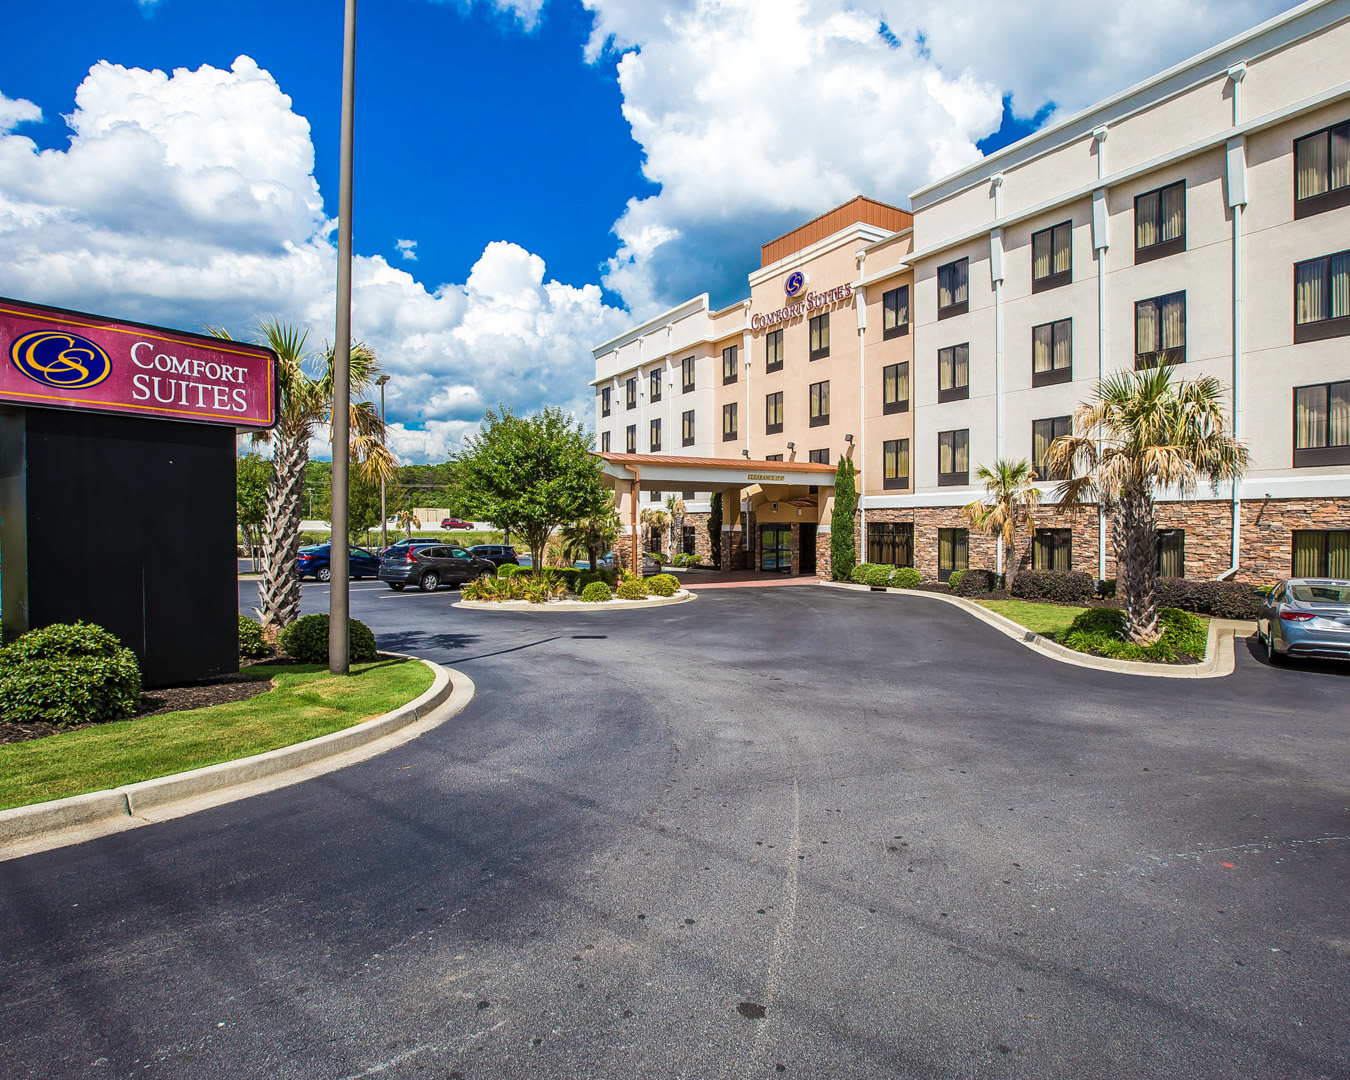 Comfort Suites Coupons Near Me In Simpsonville 8coupons